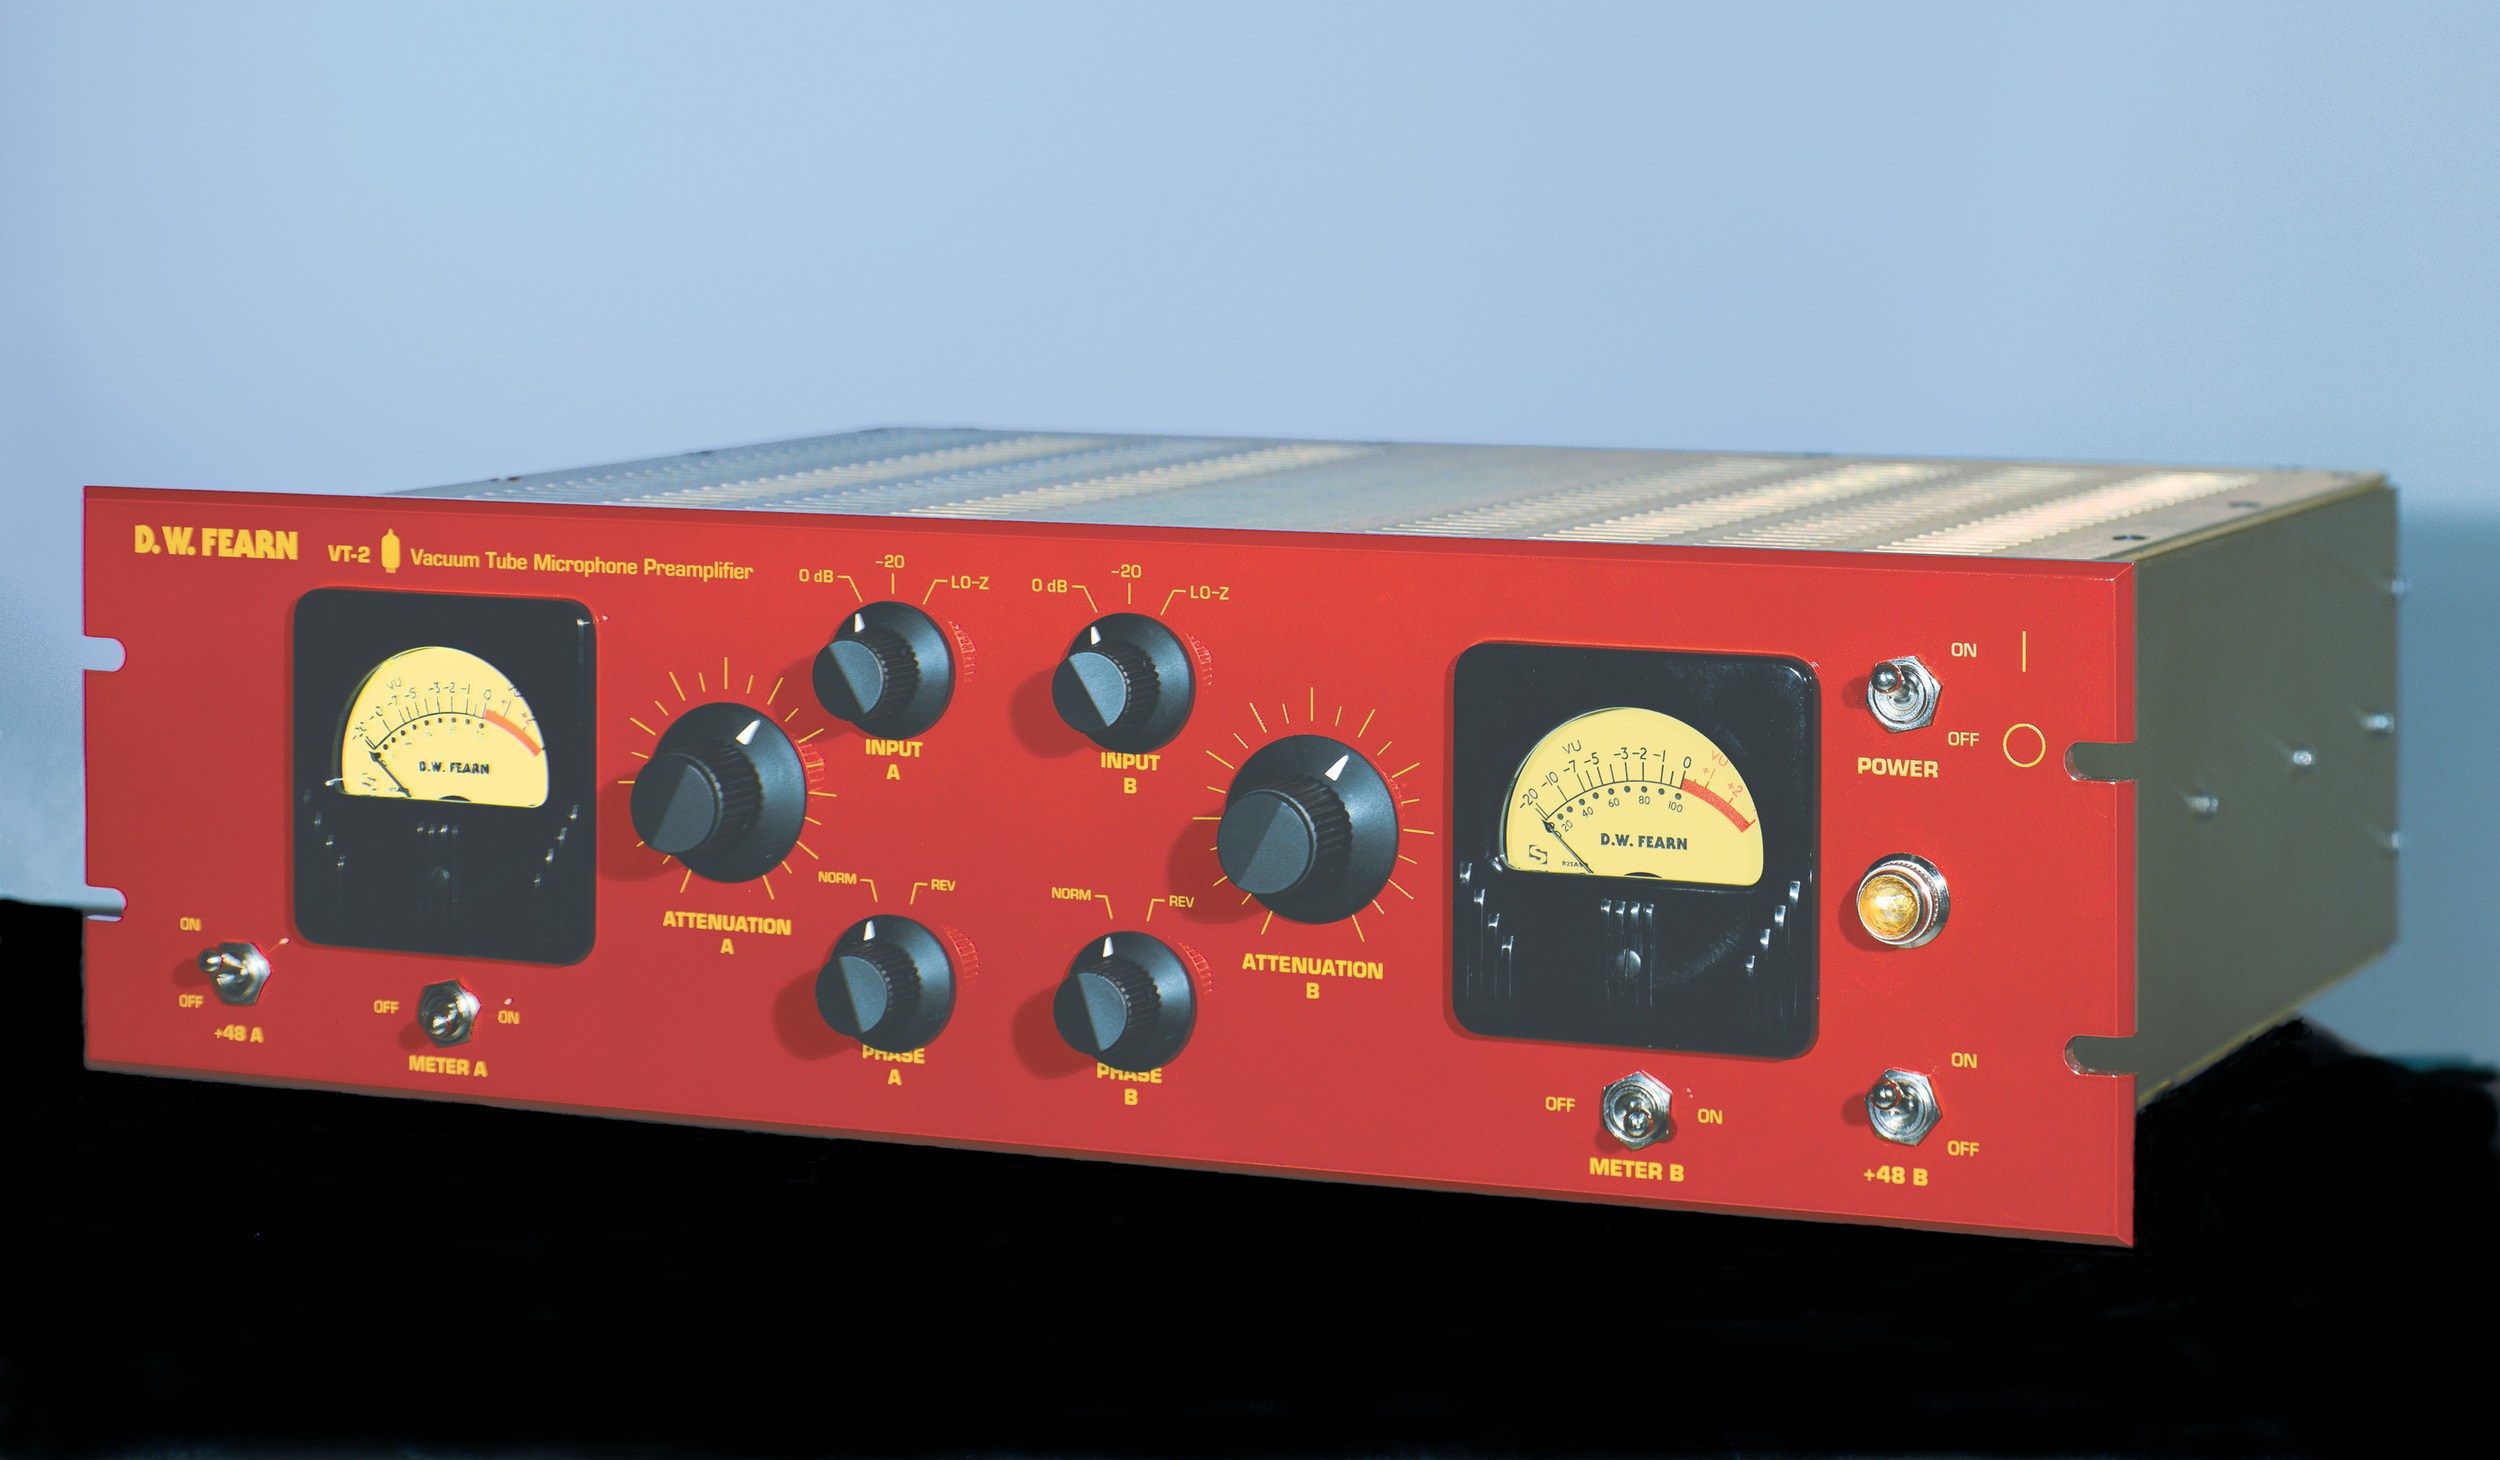 The D.W. Fearn Vt-2 Mic Preamp